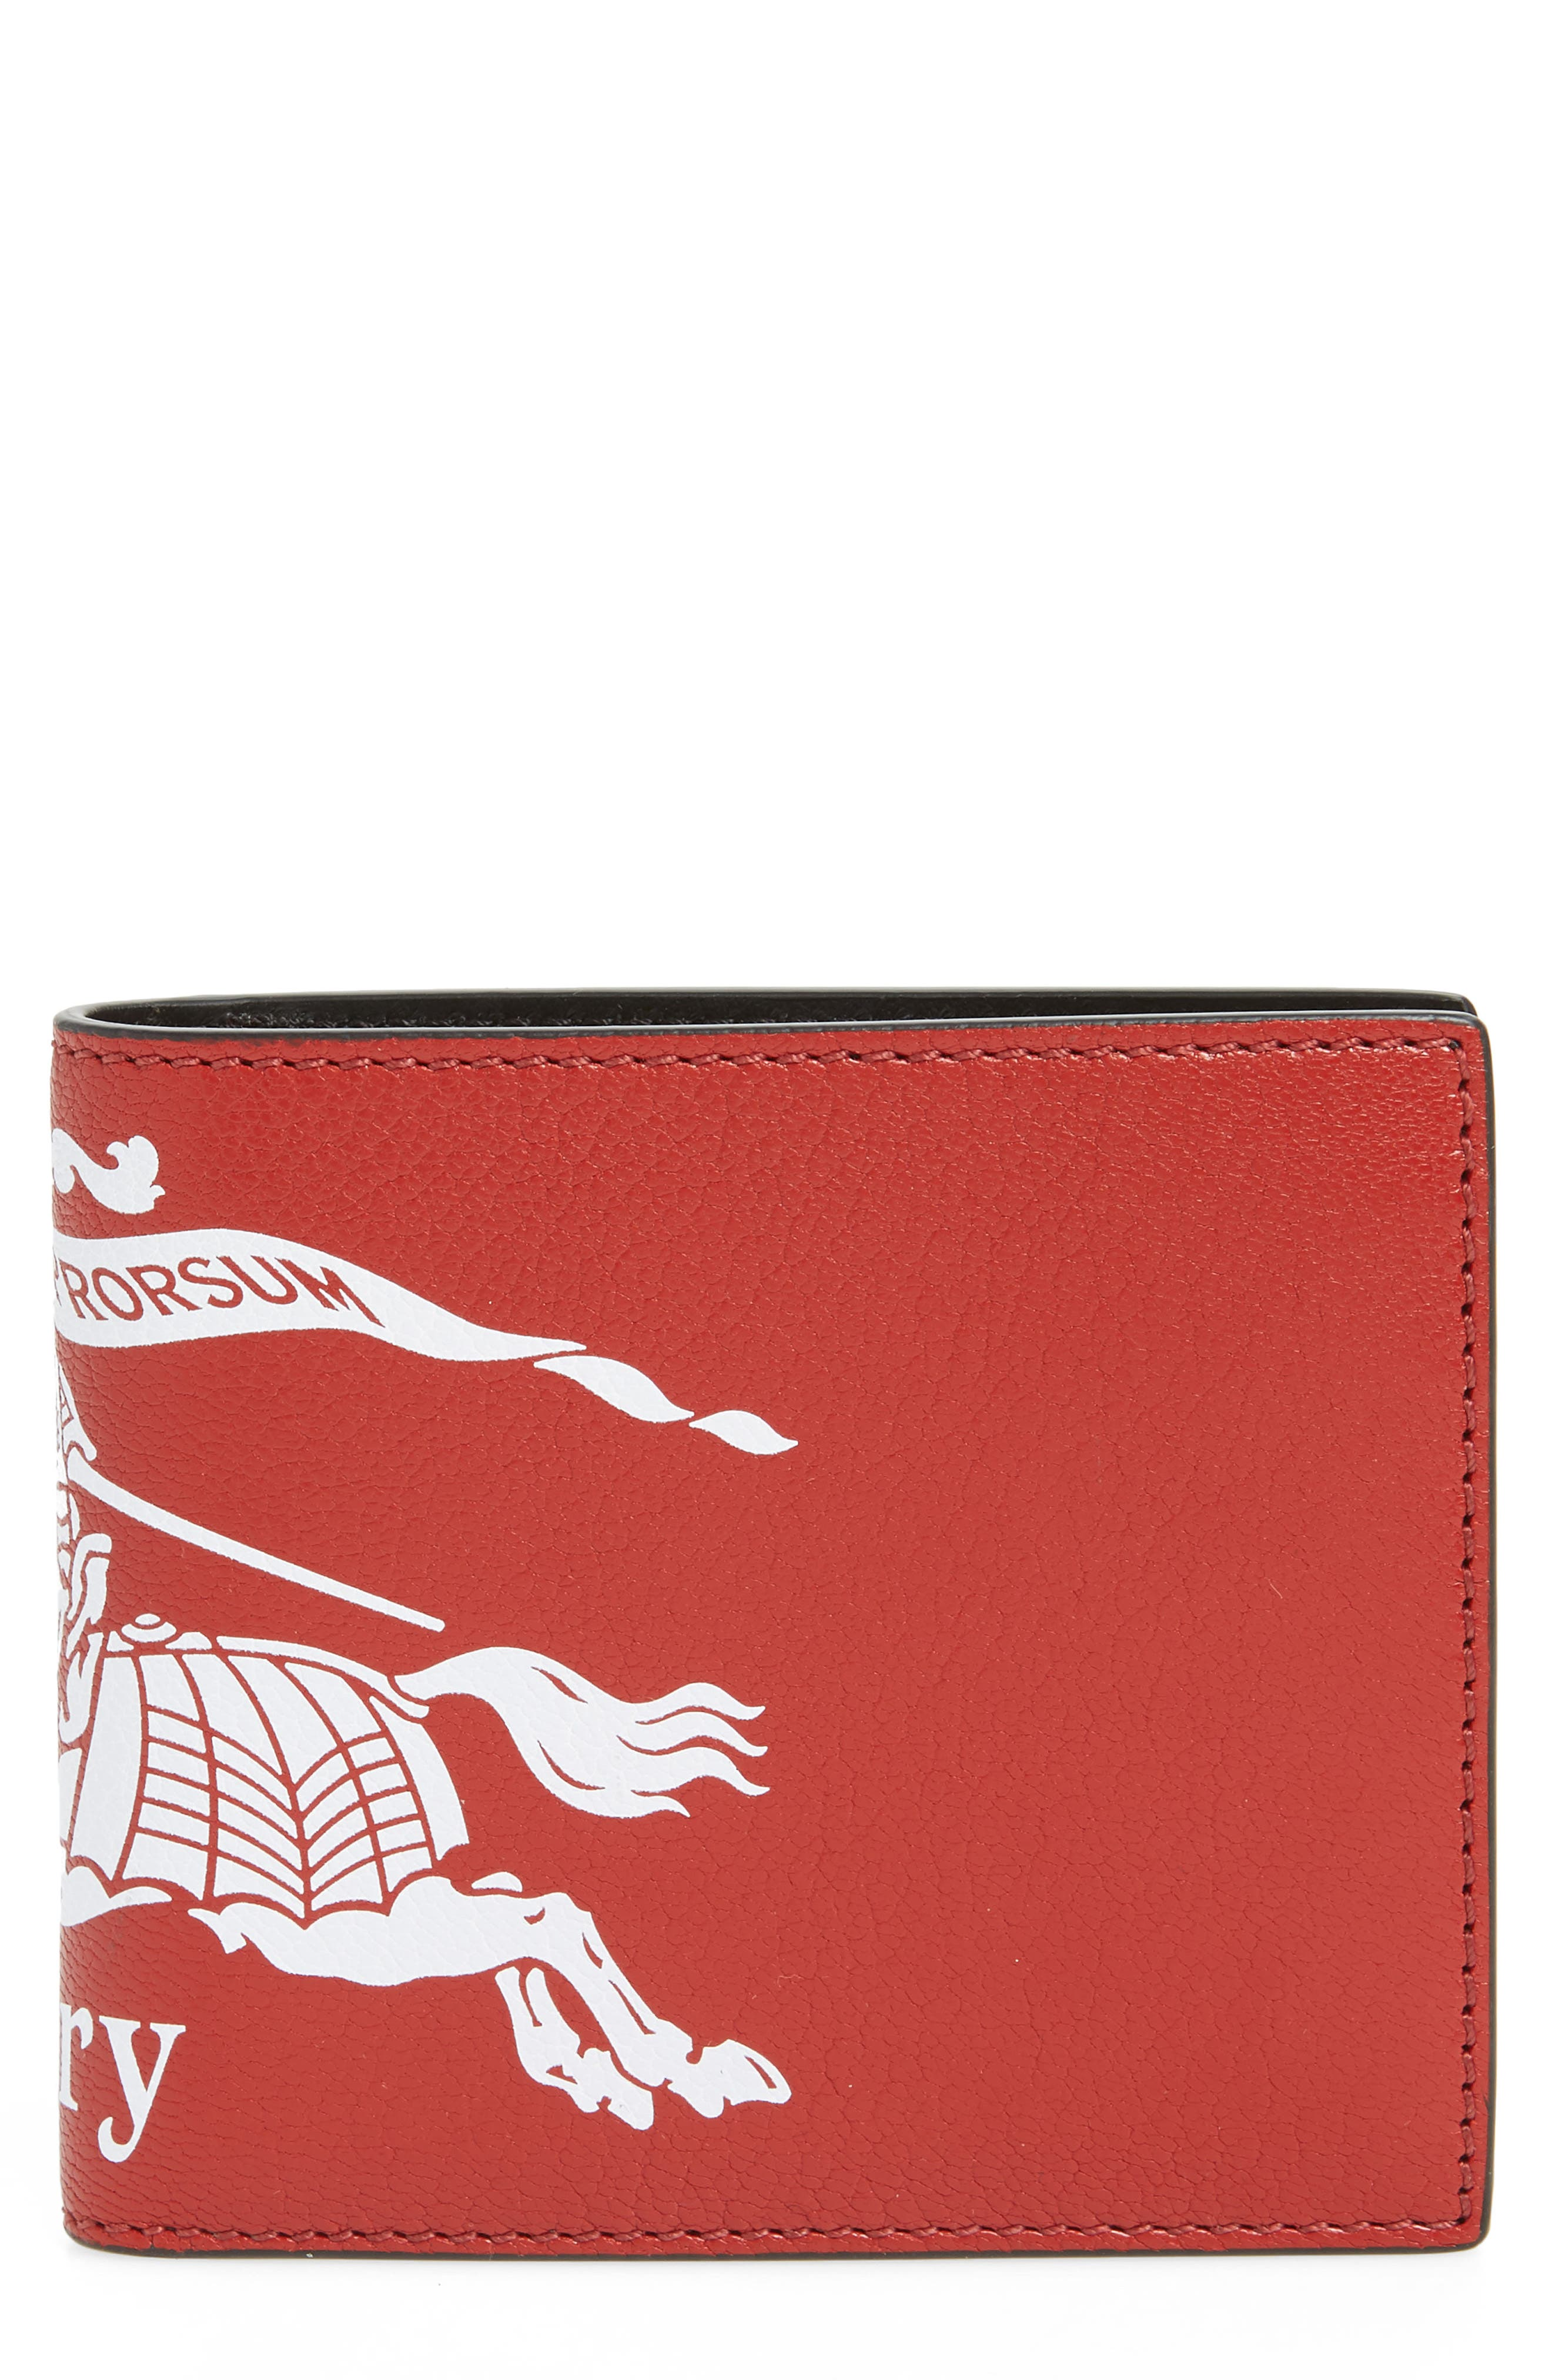 BURBERRY, Crest Print Leather Billfold, Main thumbnail 1, color, RUST RED/BLACK